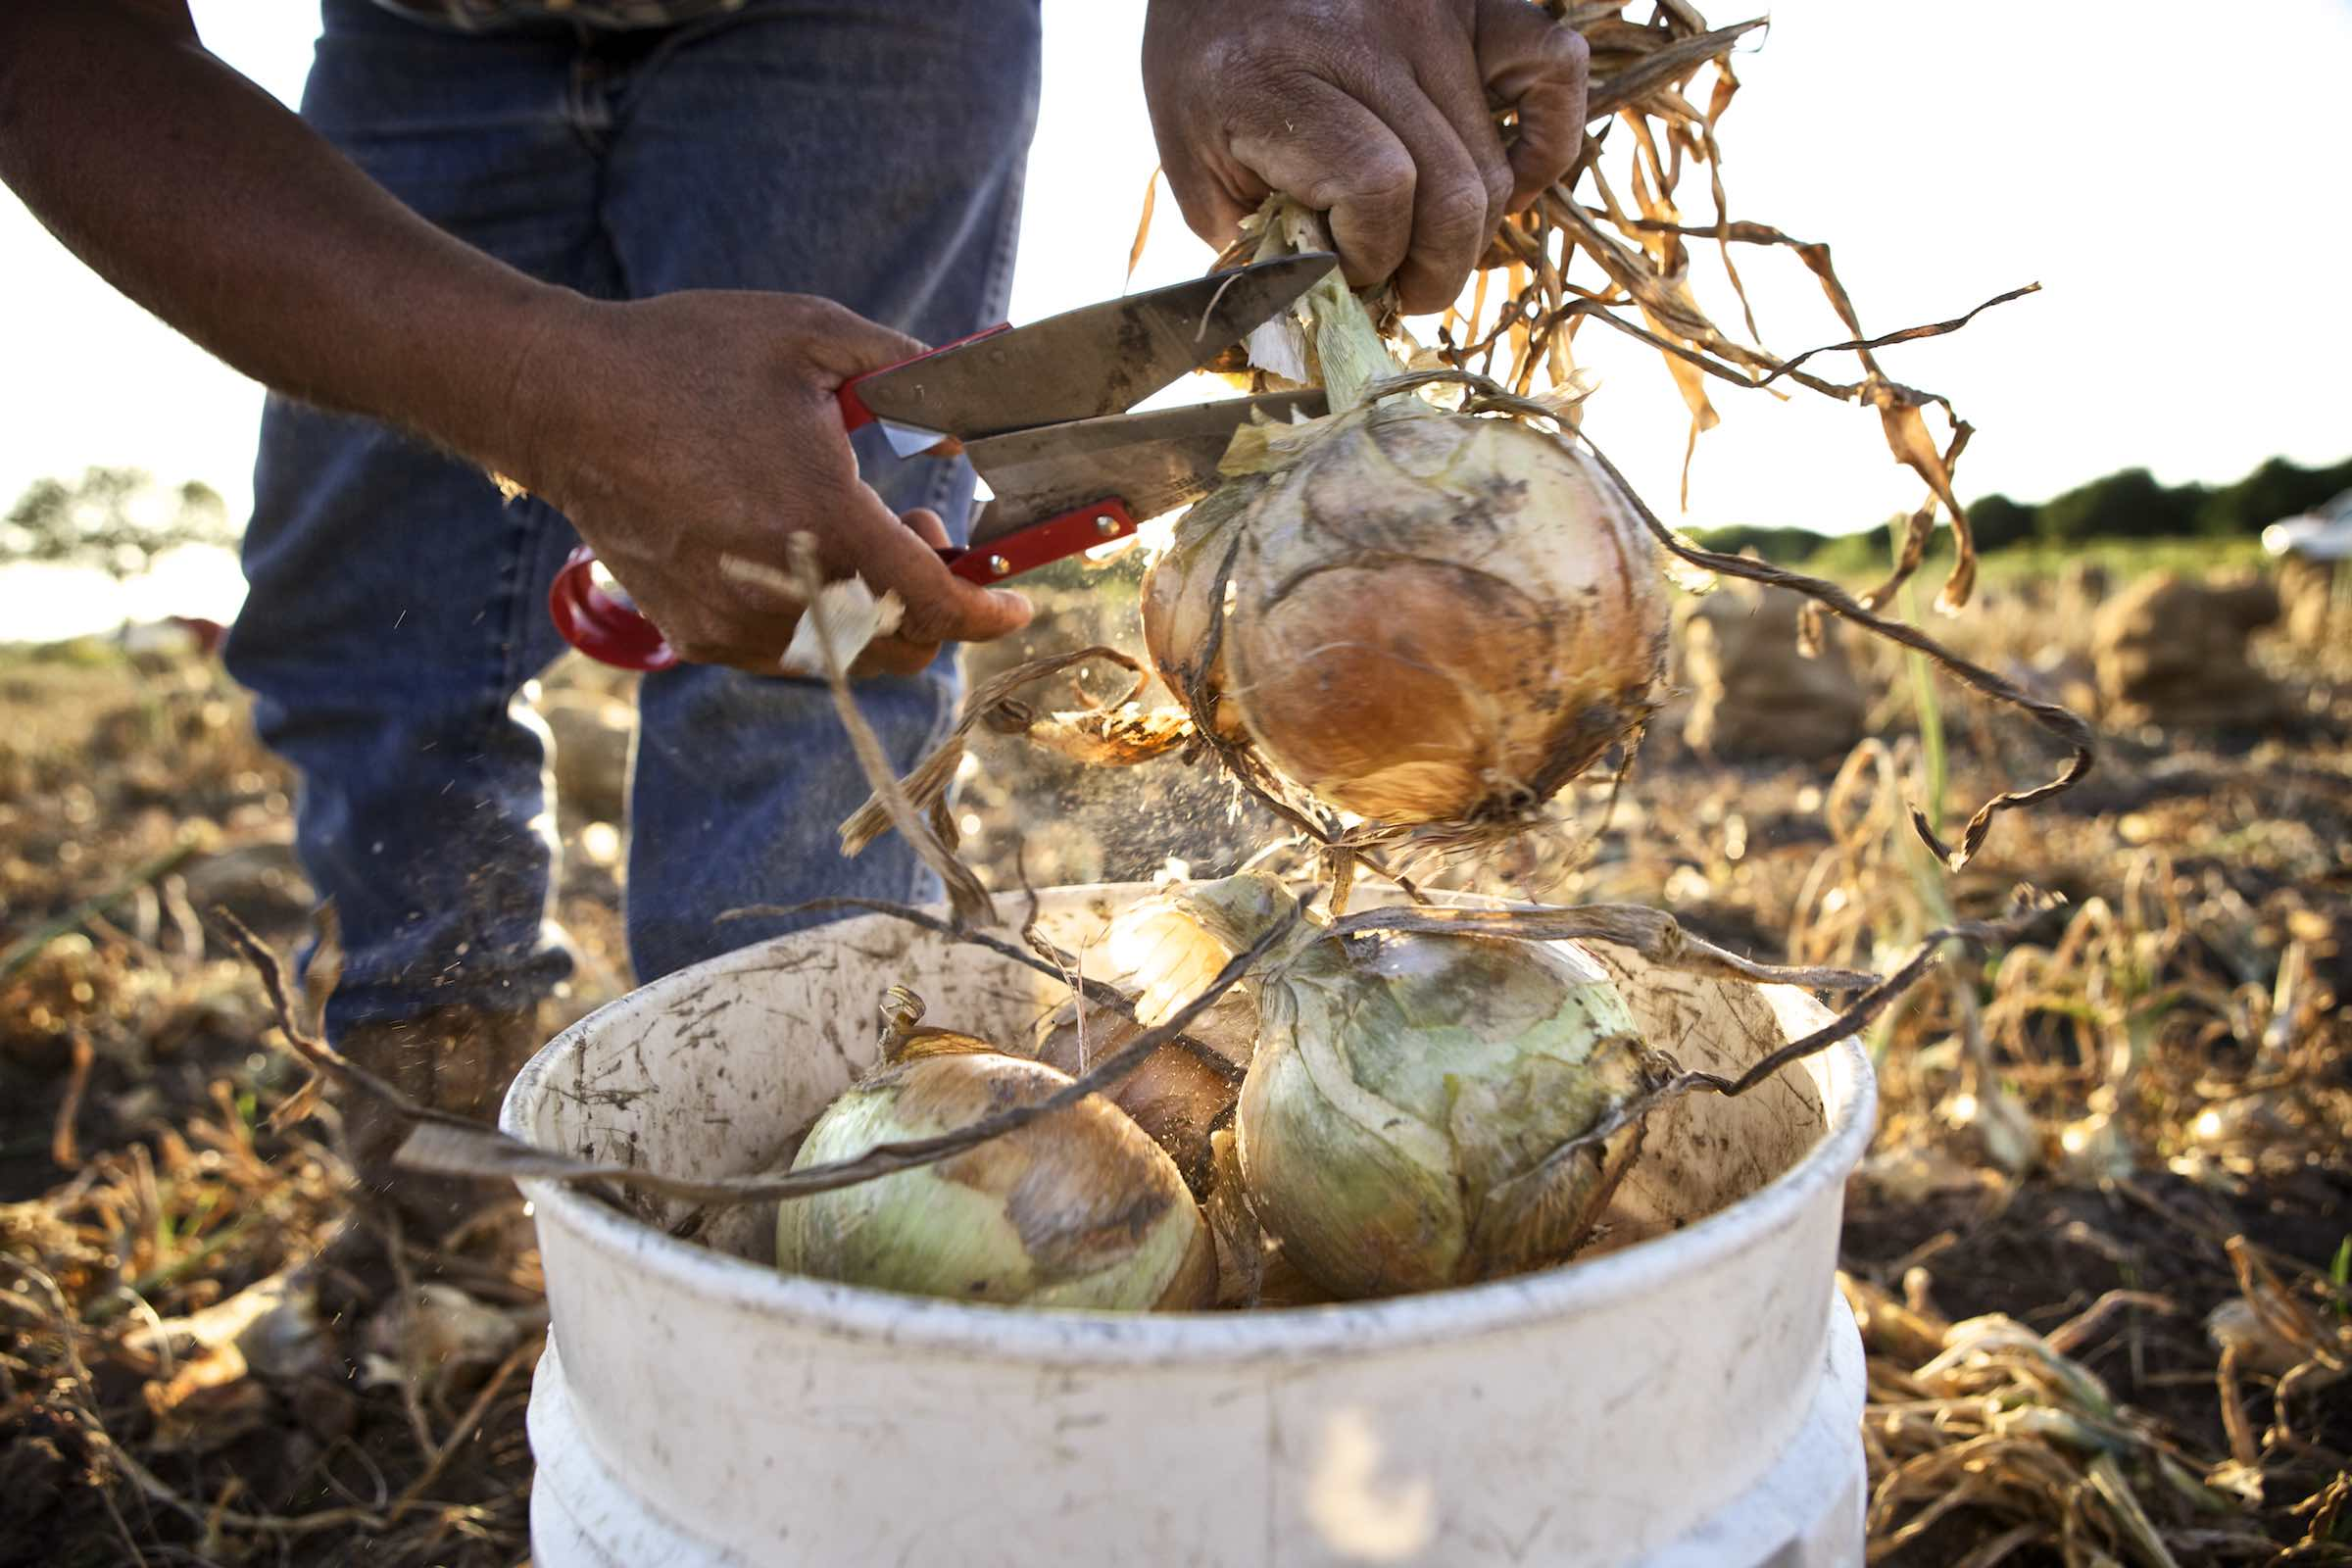 Jody Horton Photography - Farmer using large sheers to trim onions.